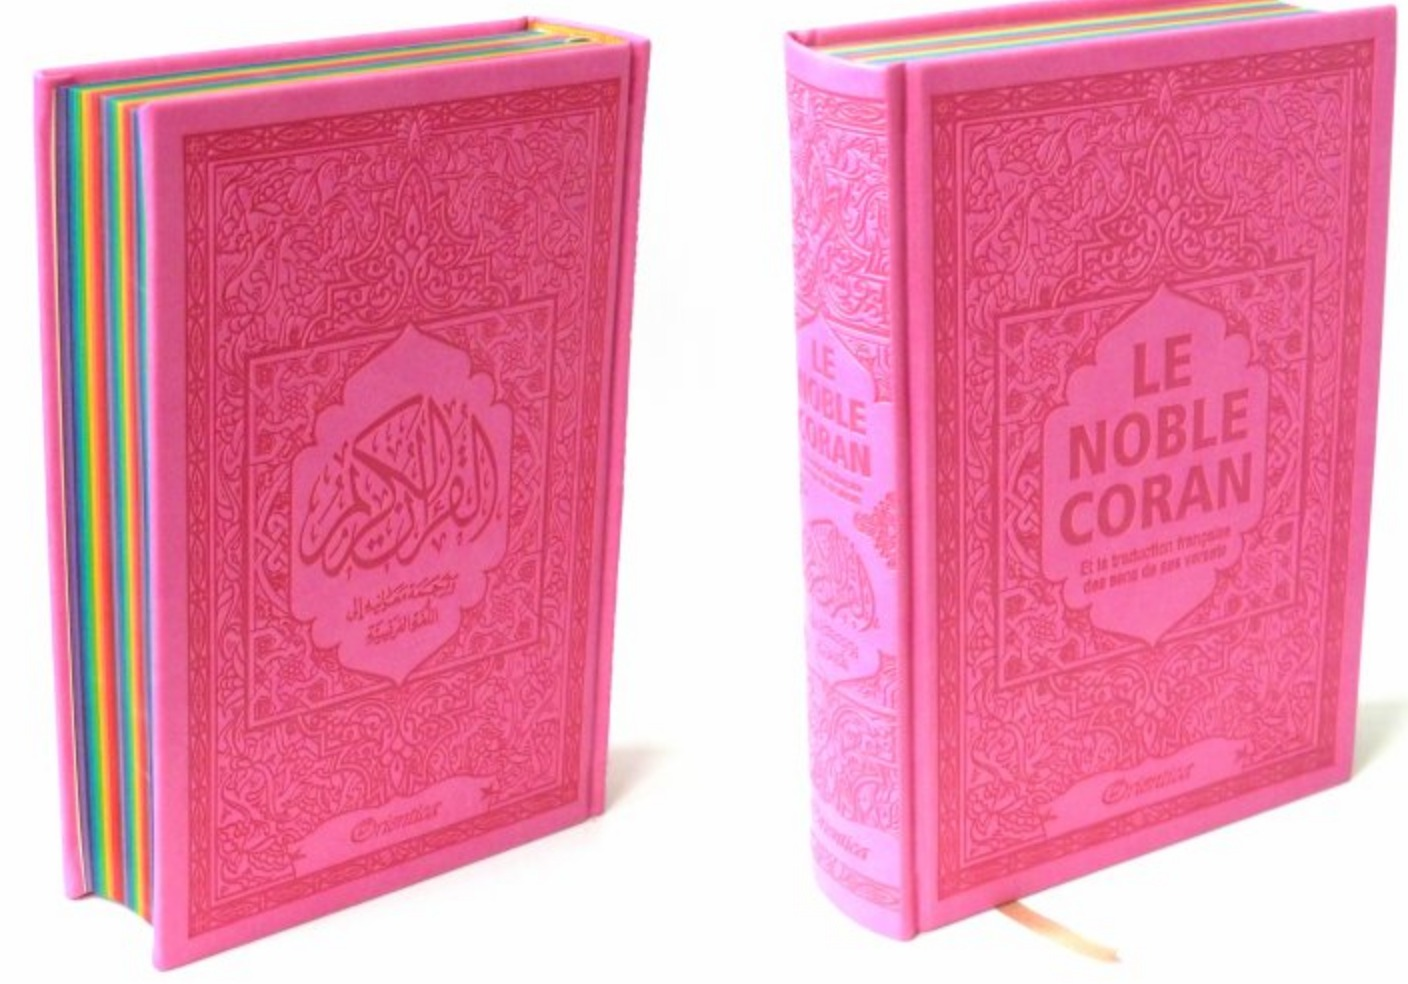 NOBLE CORAN AVEC PAGES ARC-EN-CIEL (RAINBOW) - BILINGUE (FR/AR) - COUVERTURE DAIM ROSE